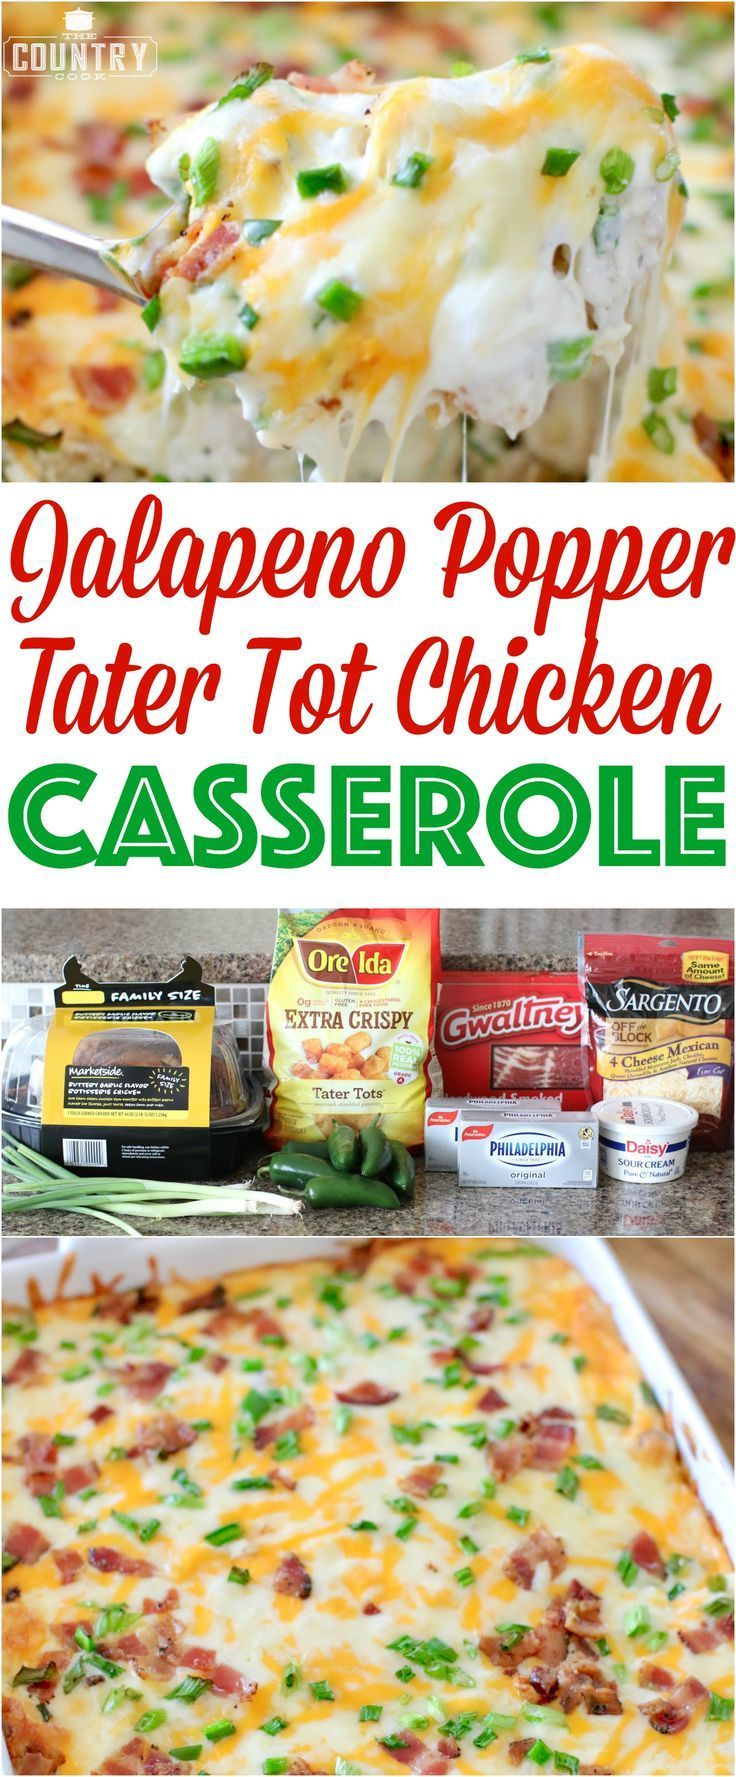 Jalapeno Popper Tater Tot Chicken Casserole recipe from The Country Cook #mexican_recipes_chicken